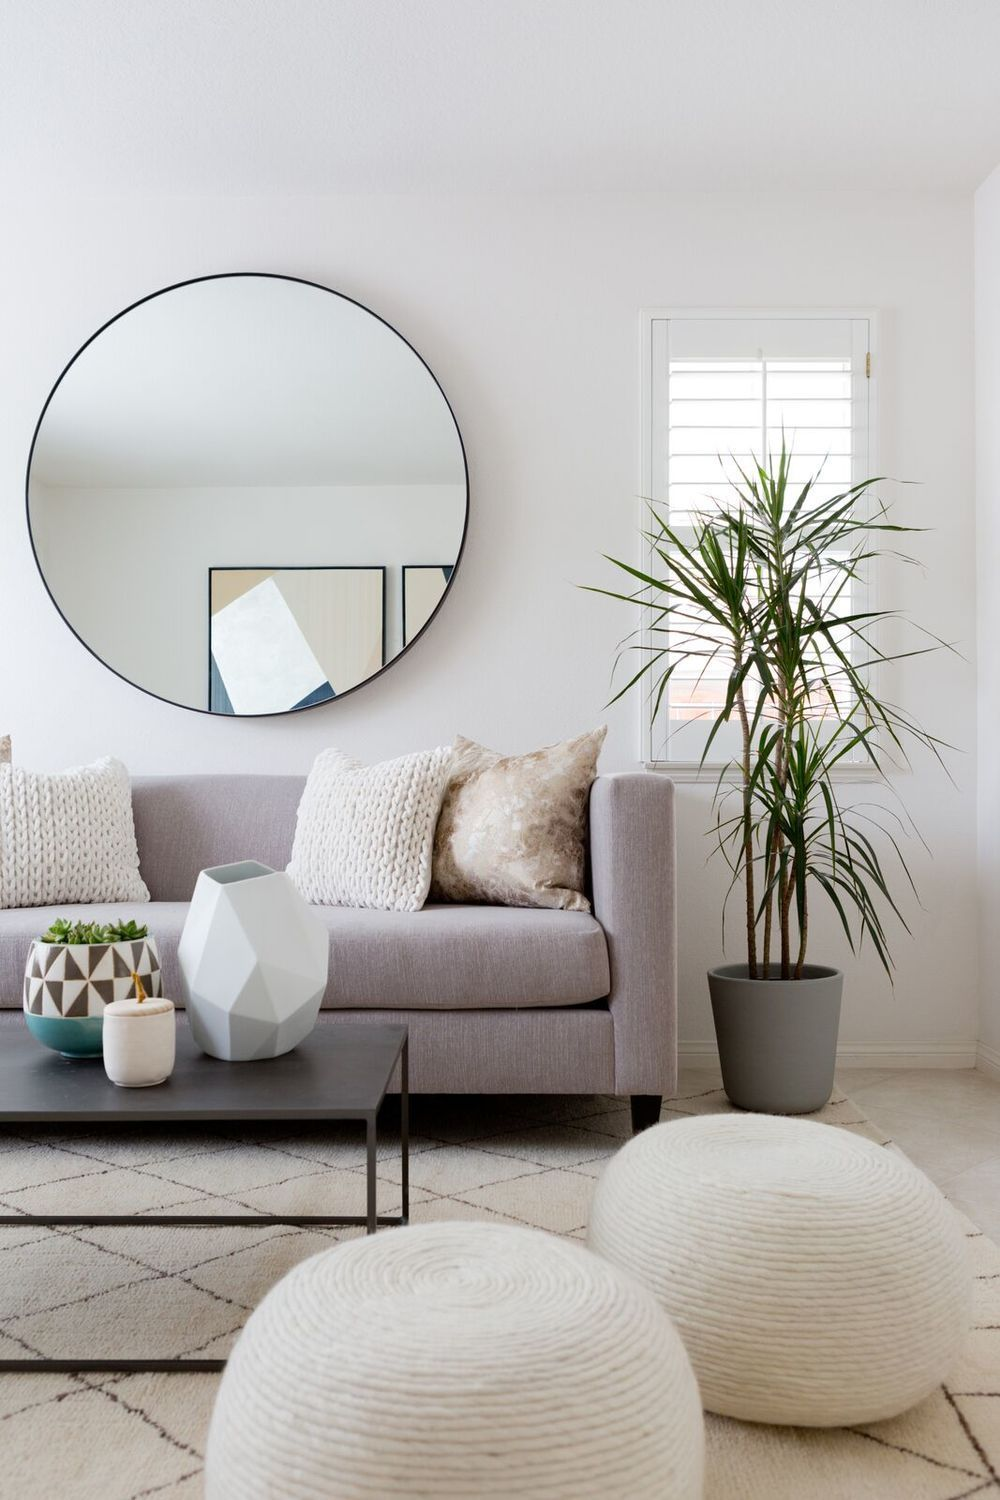 Pin by designs for home decor ideas on living room ideas in